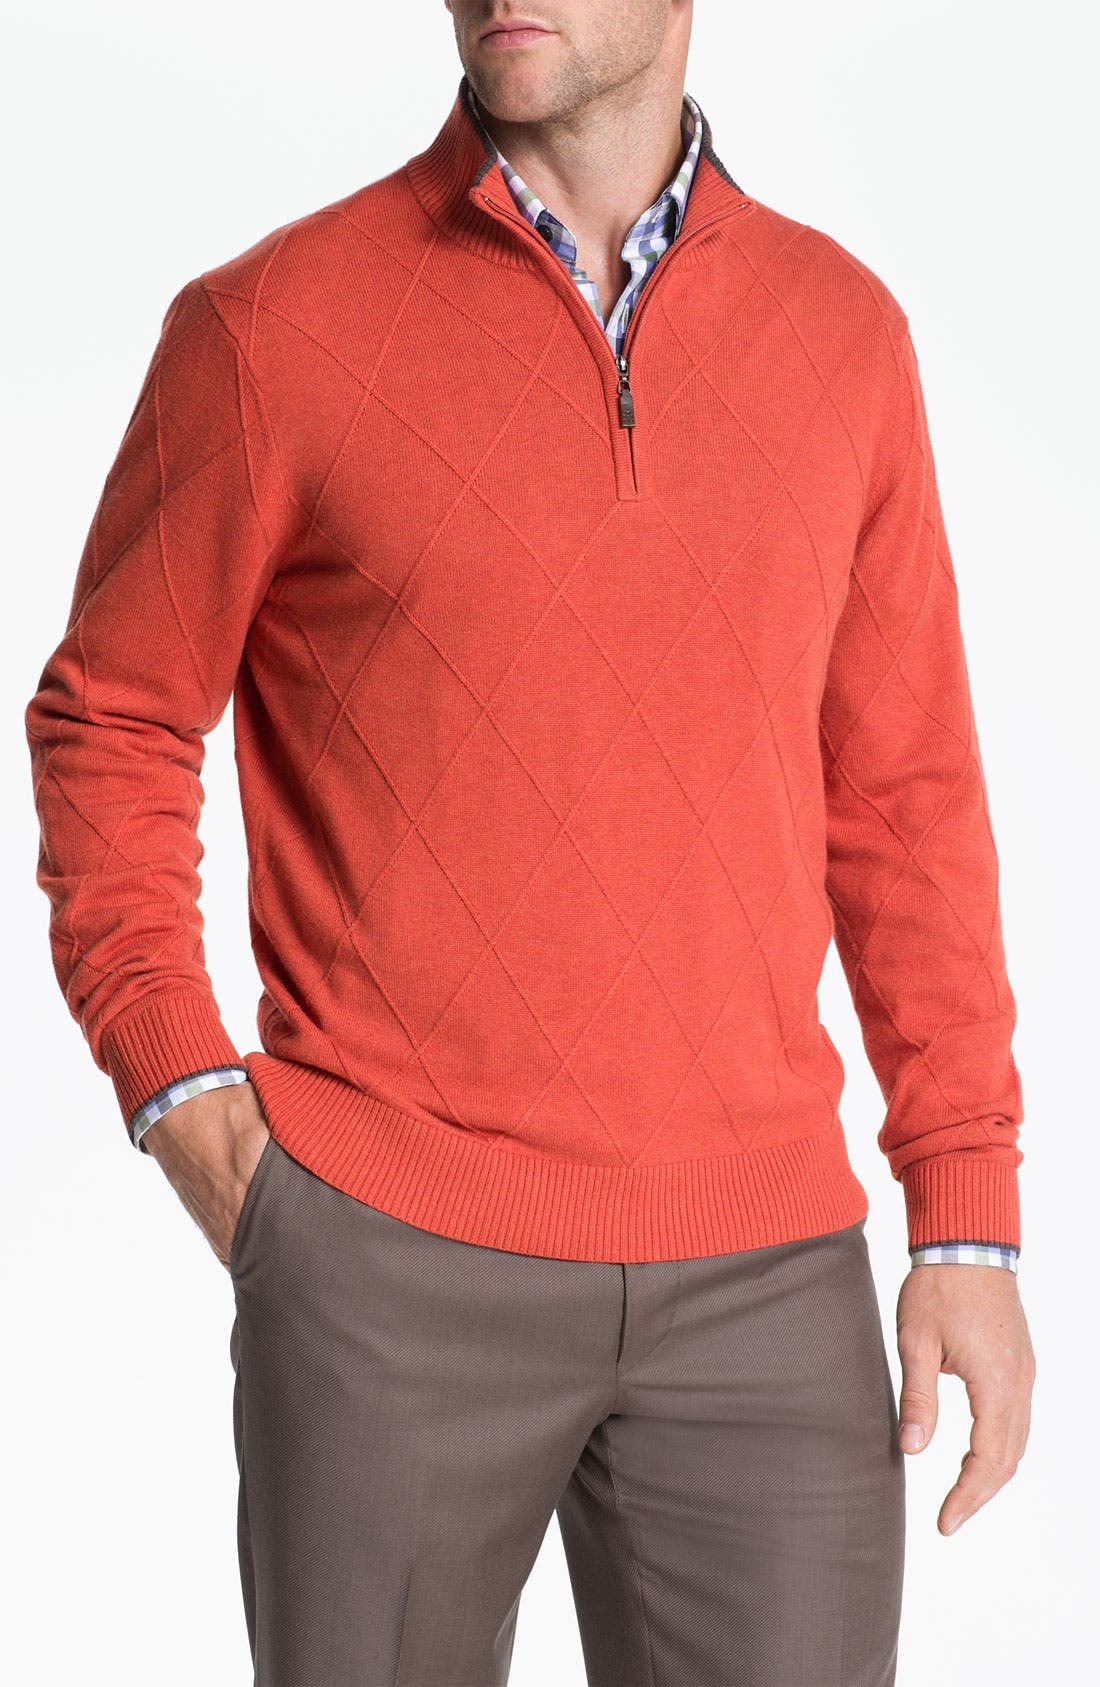 Alternate Image 1 Selected - Robert Talbott Cotton & Cashmere Quarter Zip Sweater